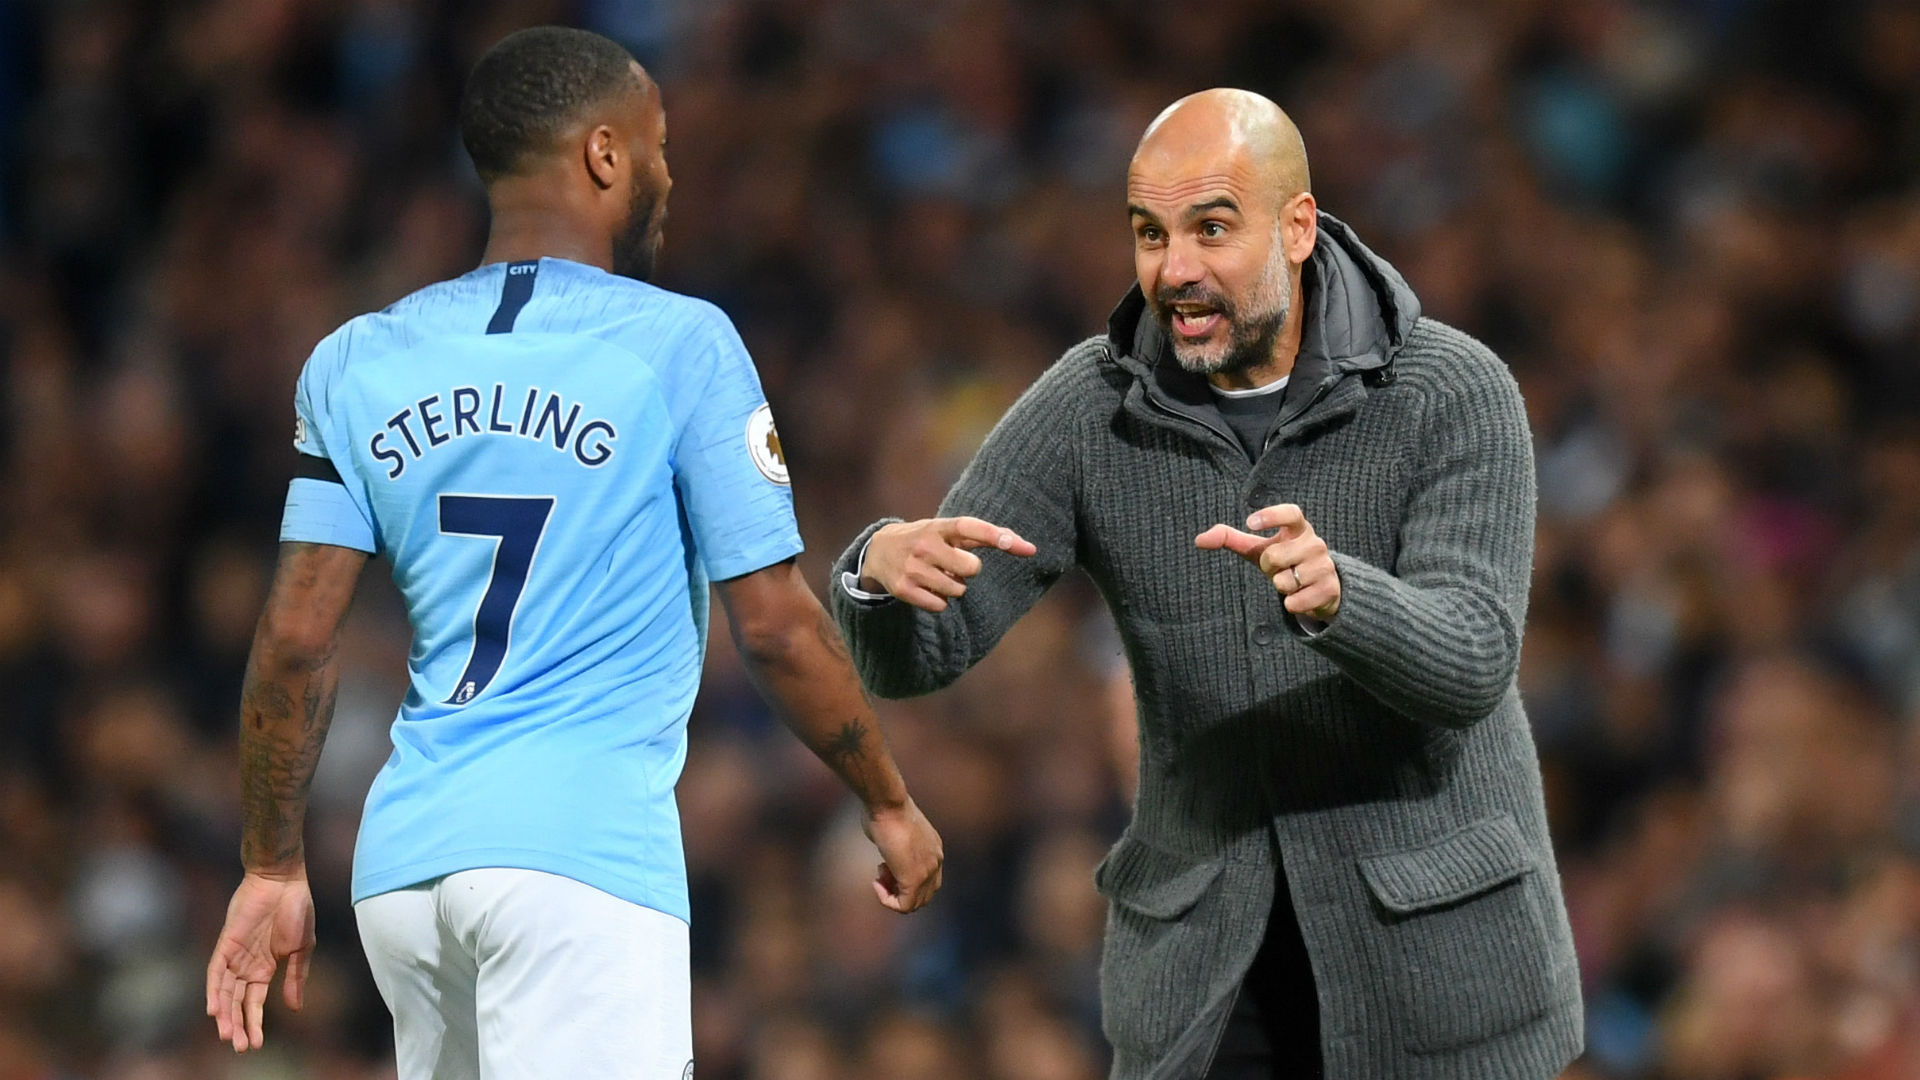 Guardiola's fines made City winners – Sterling